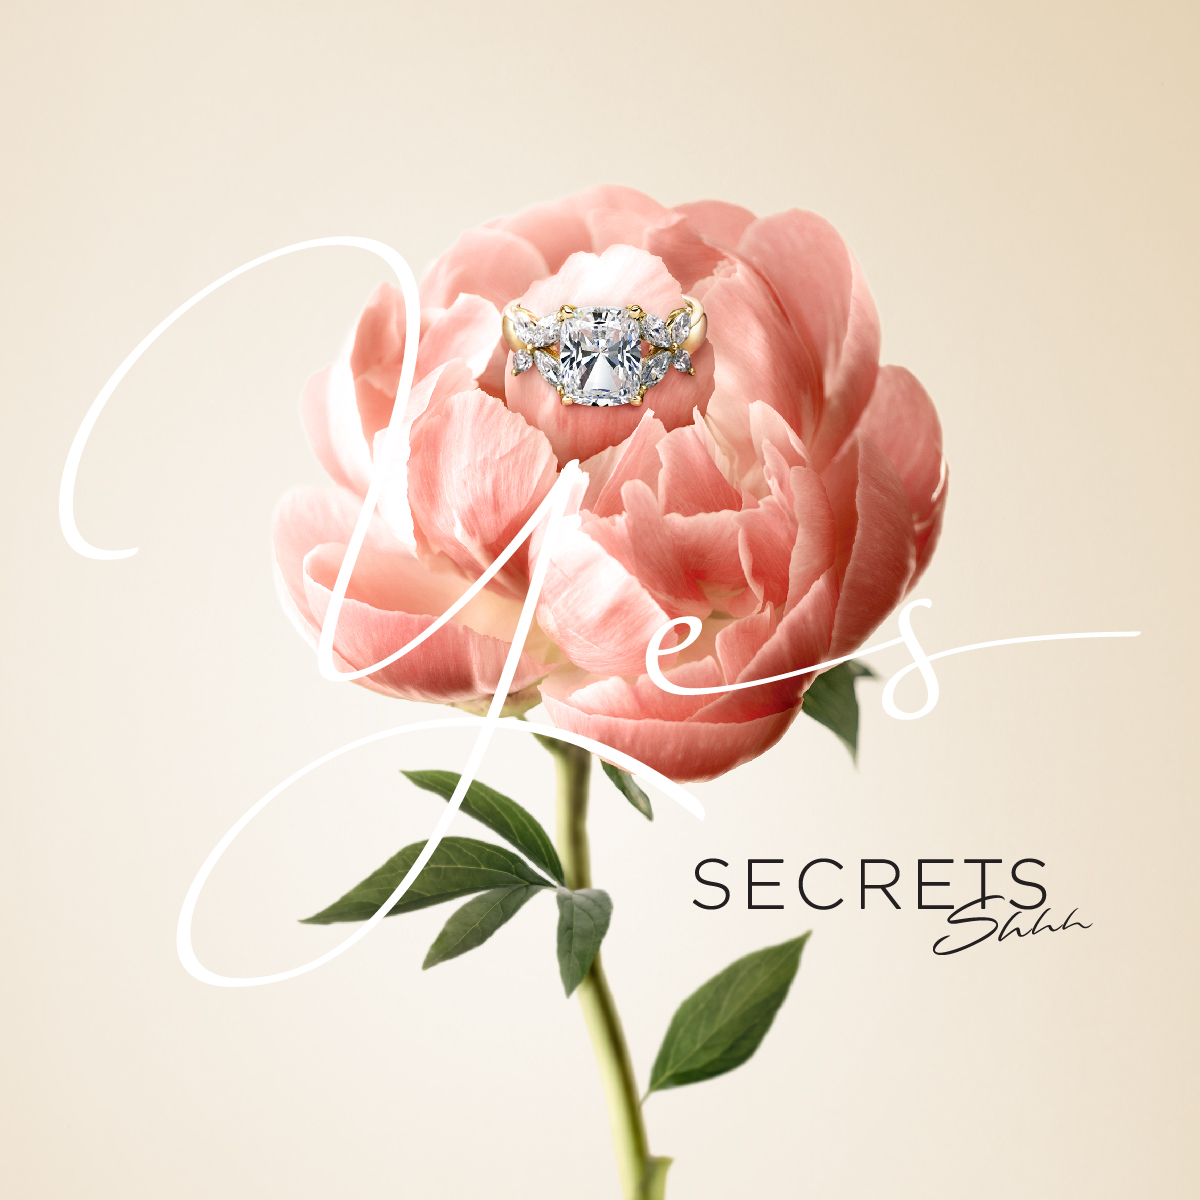 Secrets Shh Brand Refresh Retail Design